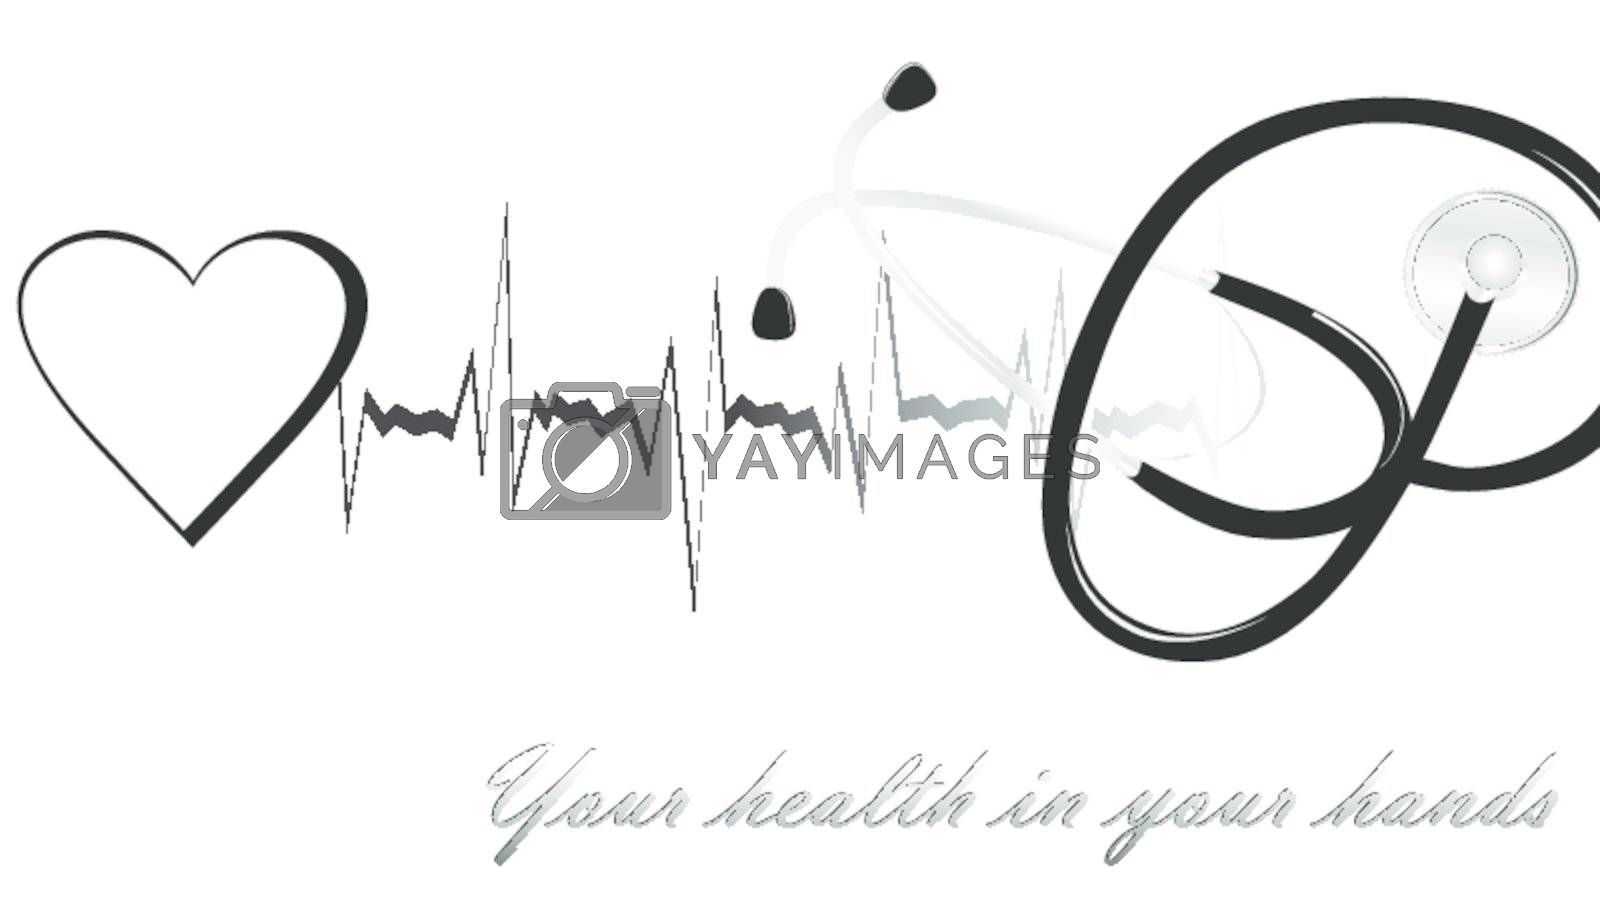 the health theme with stethoscope and electrocardiogram